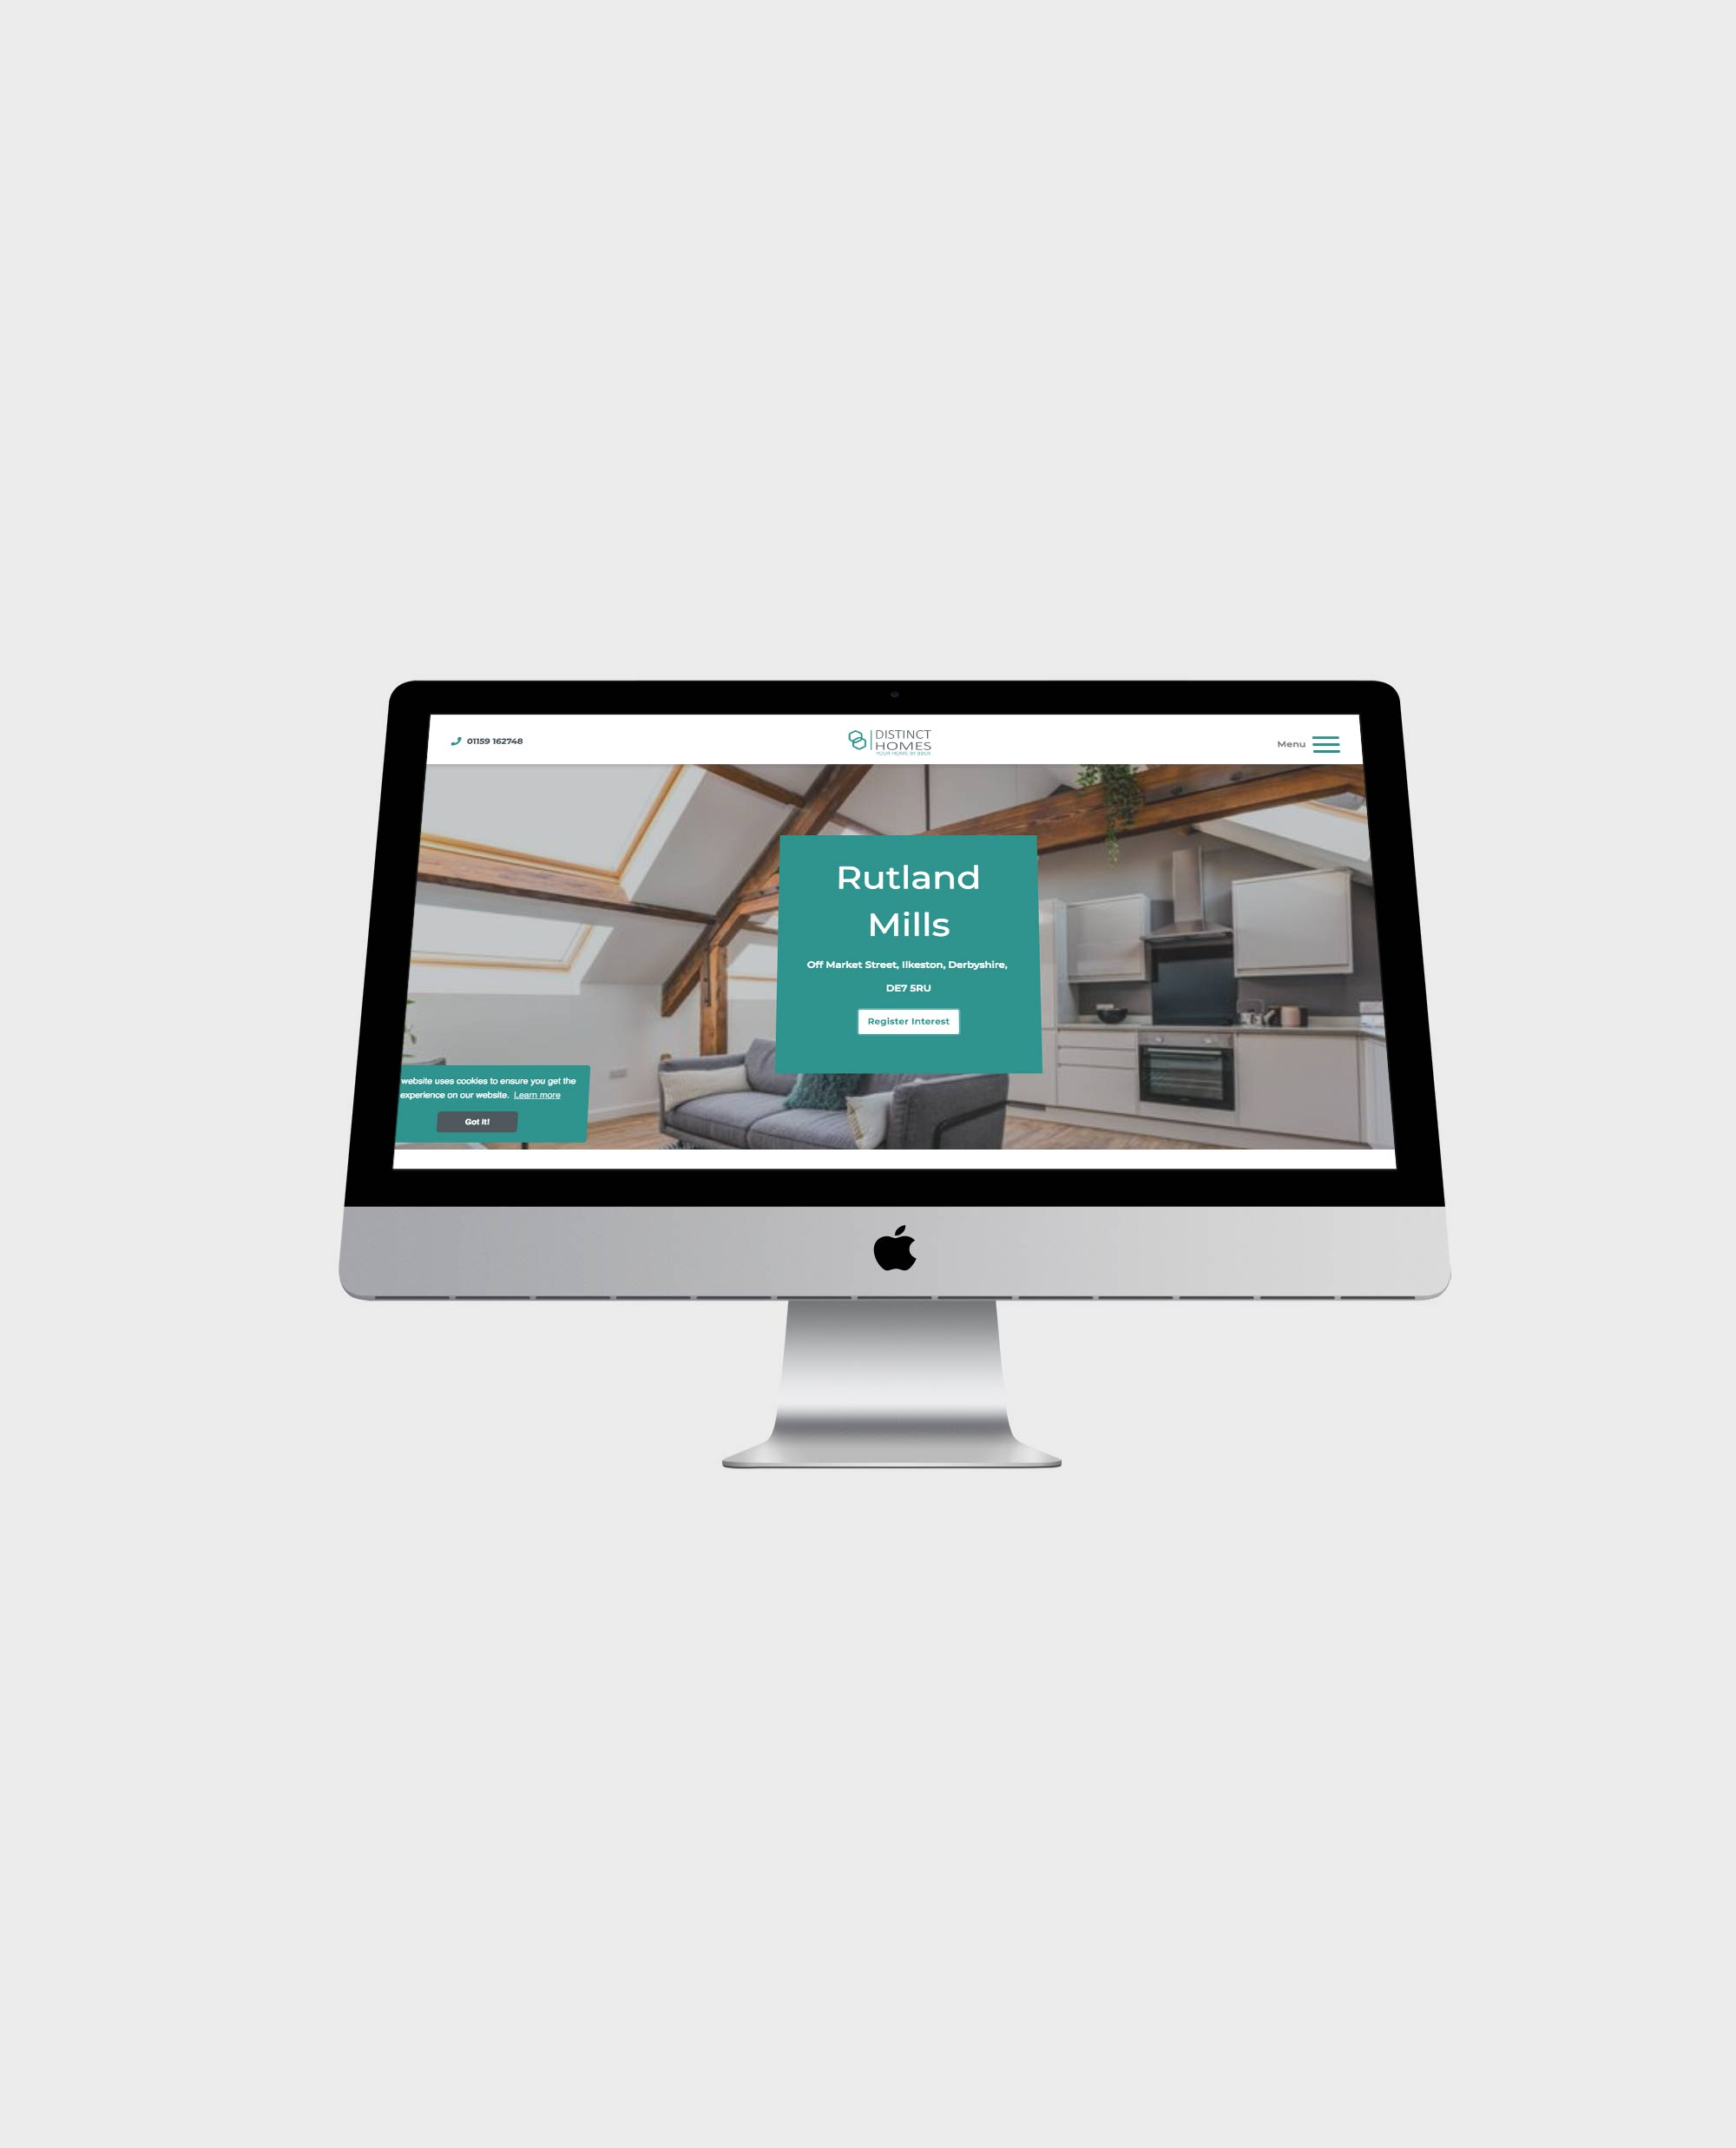 distinct homes mobile design for a website for a housing developer in a hand